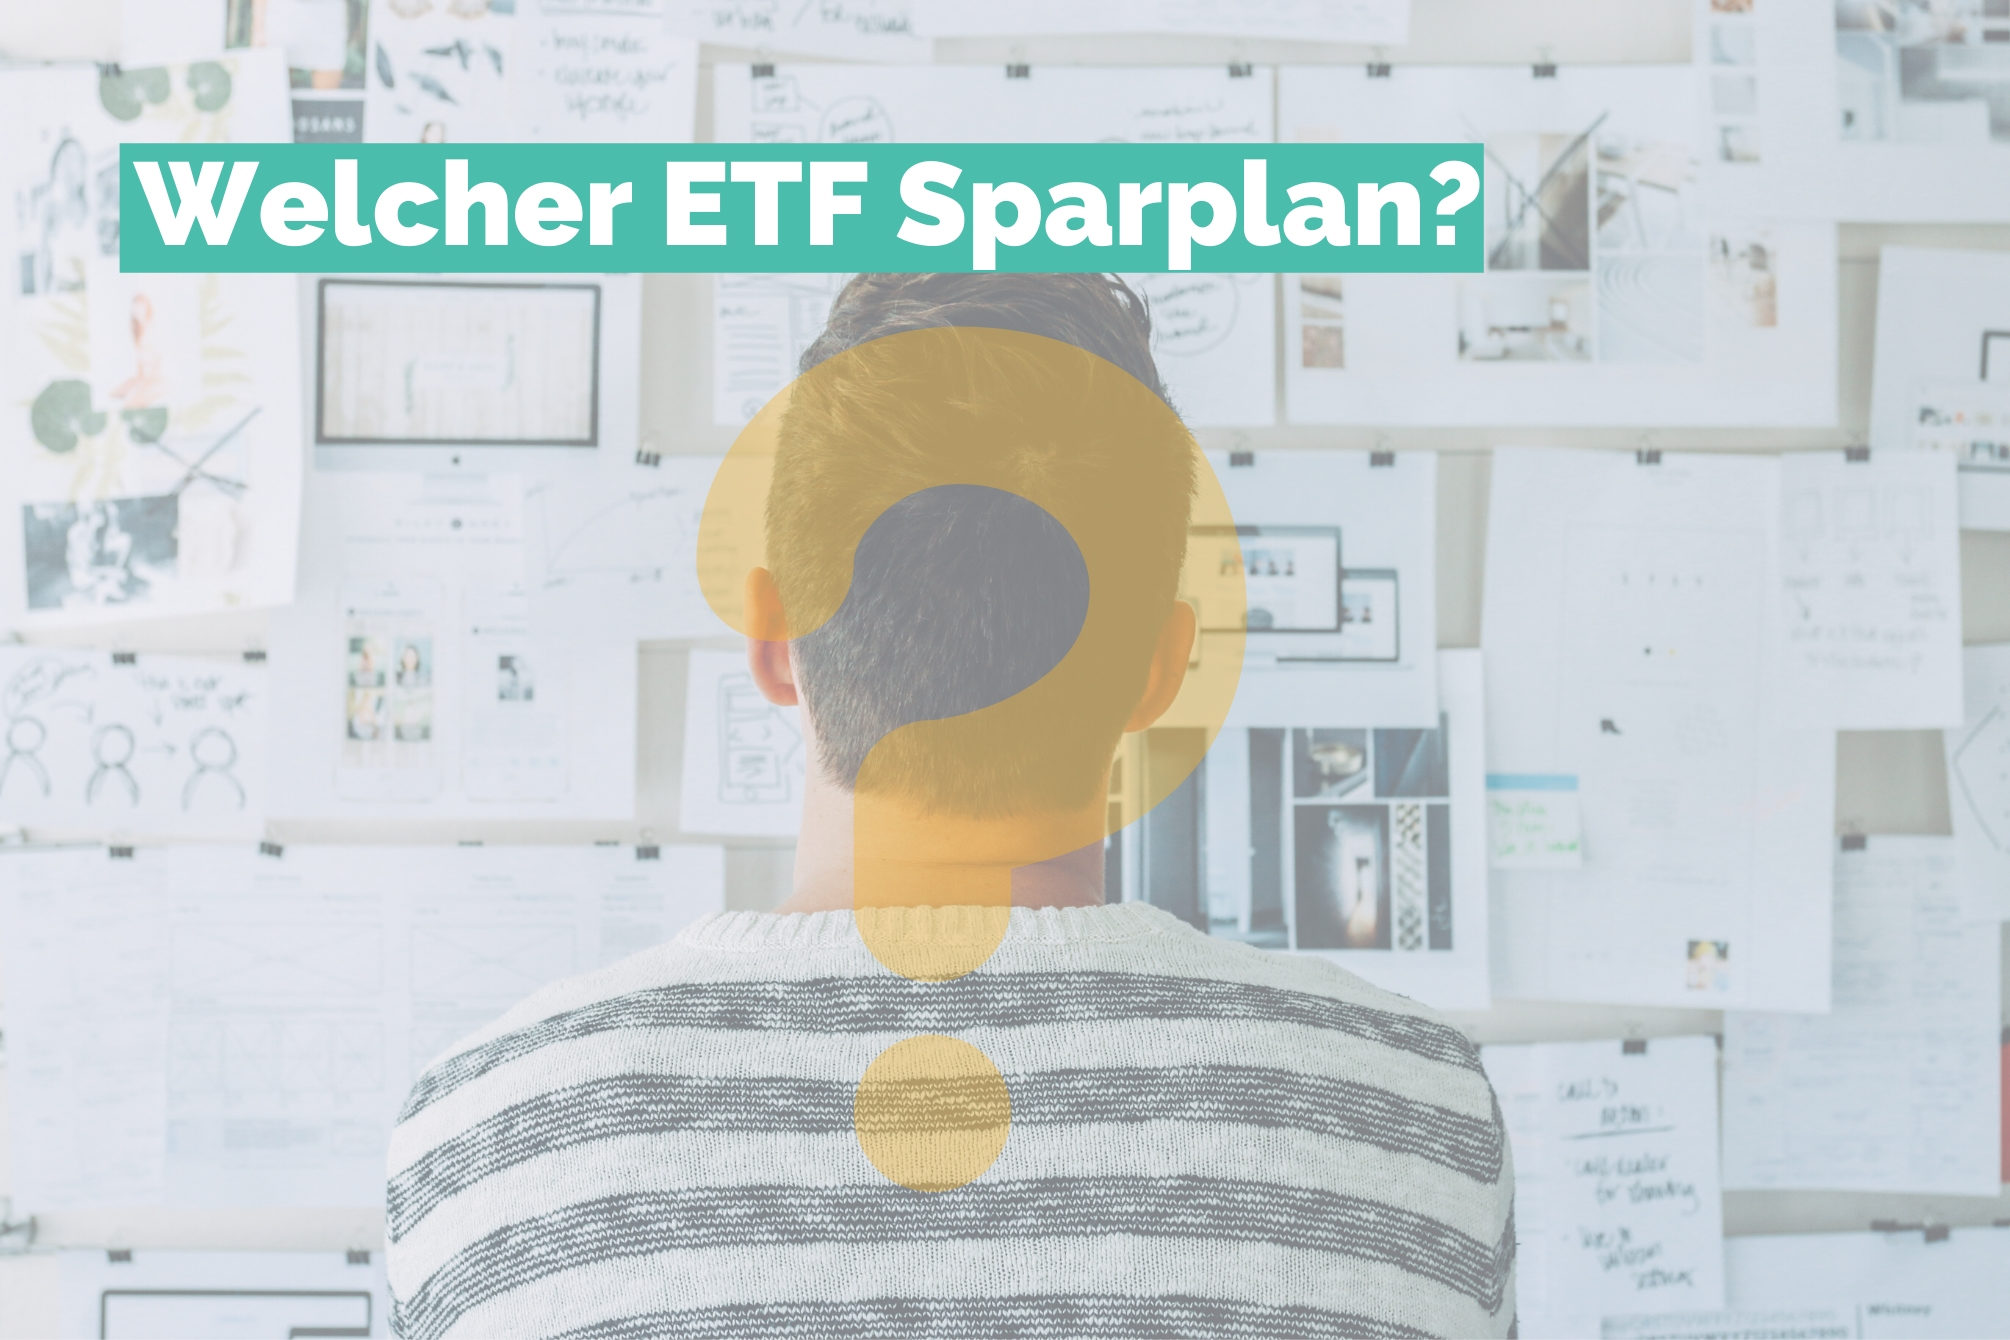 Welcher ETF Sparplan